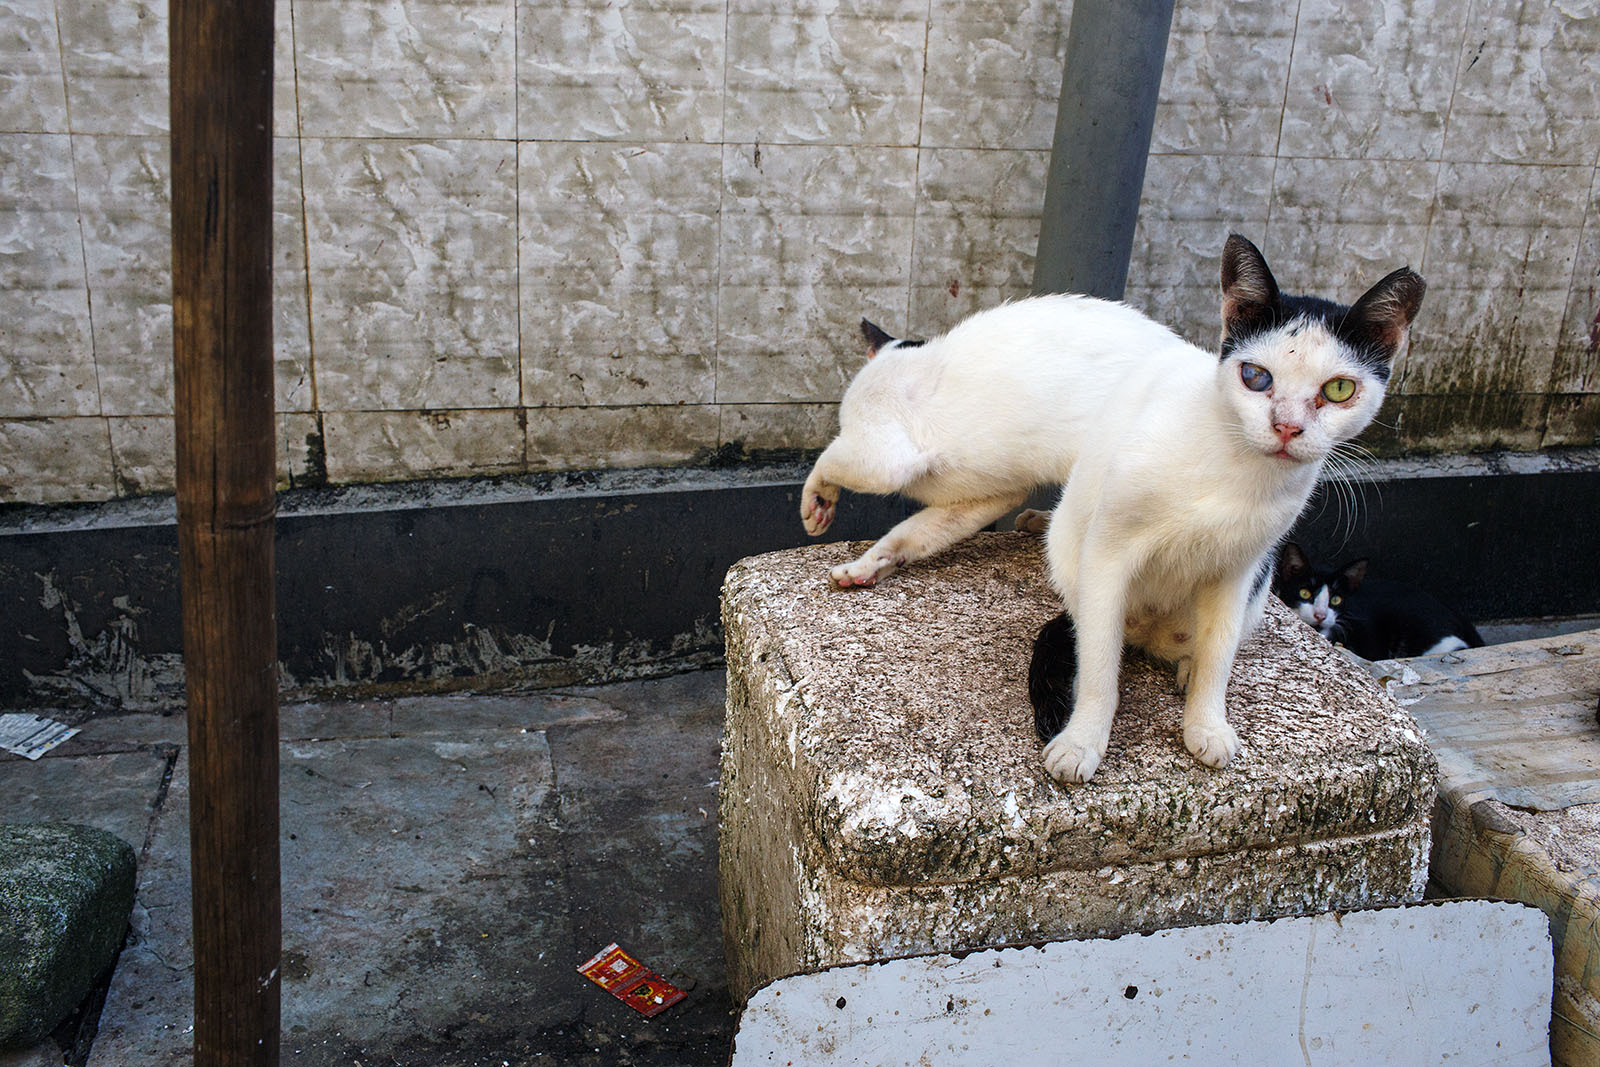 Cats - Mumbai, India | by Maciej Dakowicz